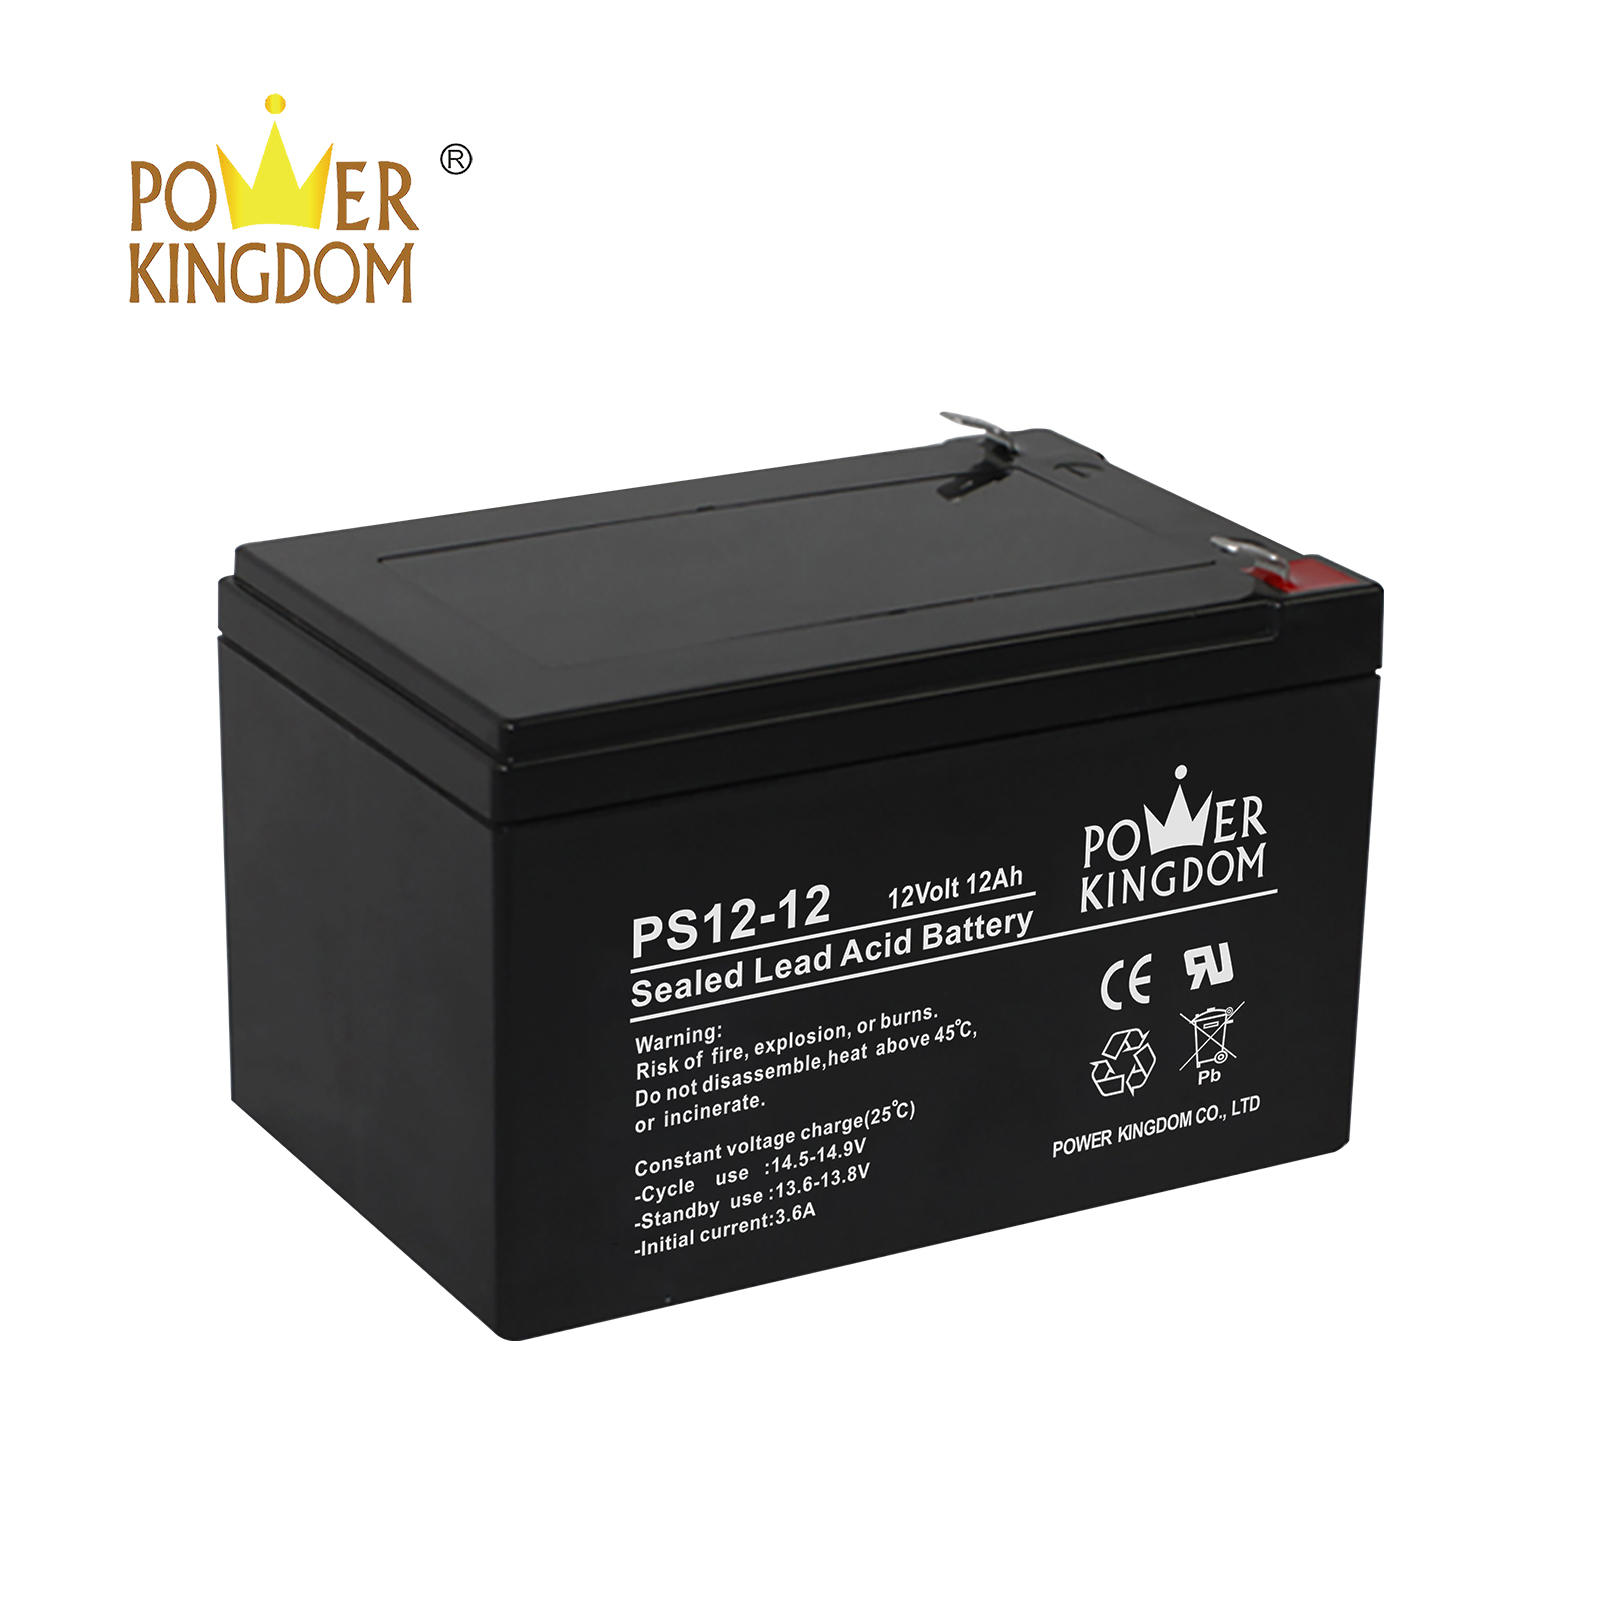 SLA AGM 12v 12ah rechargeable battery